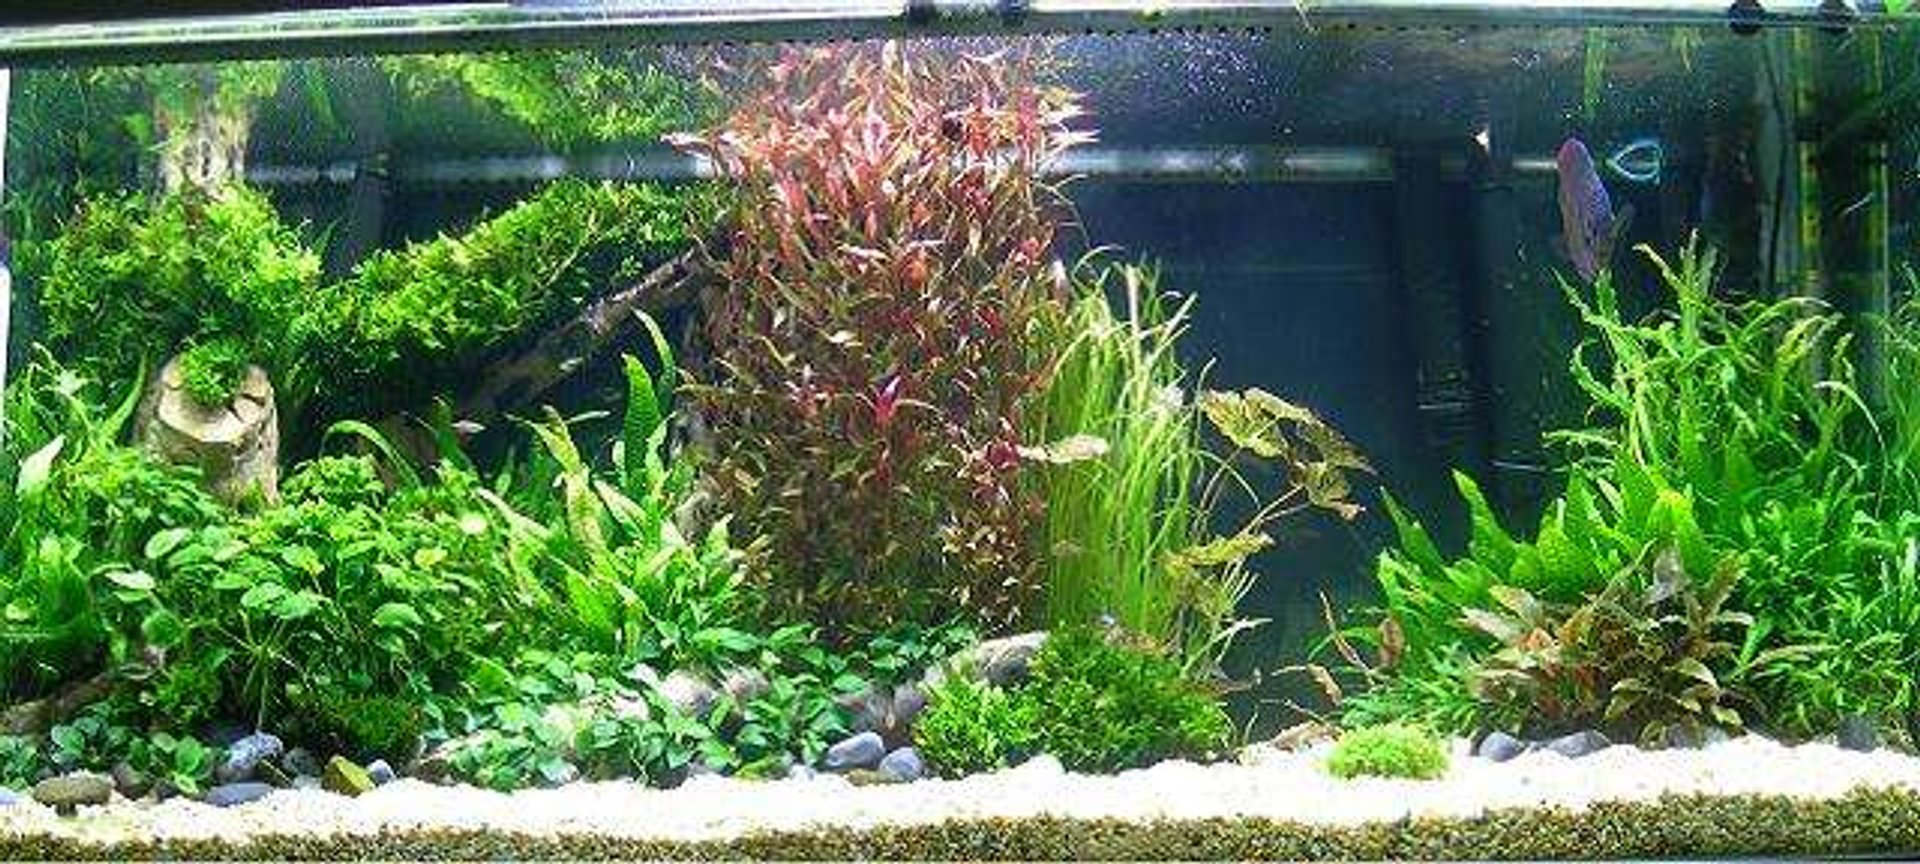 258 gallons planted tank (mostly live plants and fish) - My aquarium.